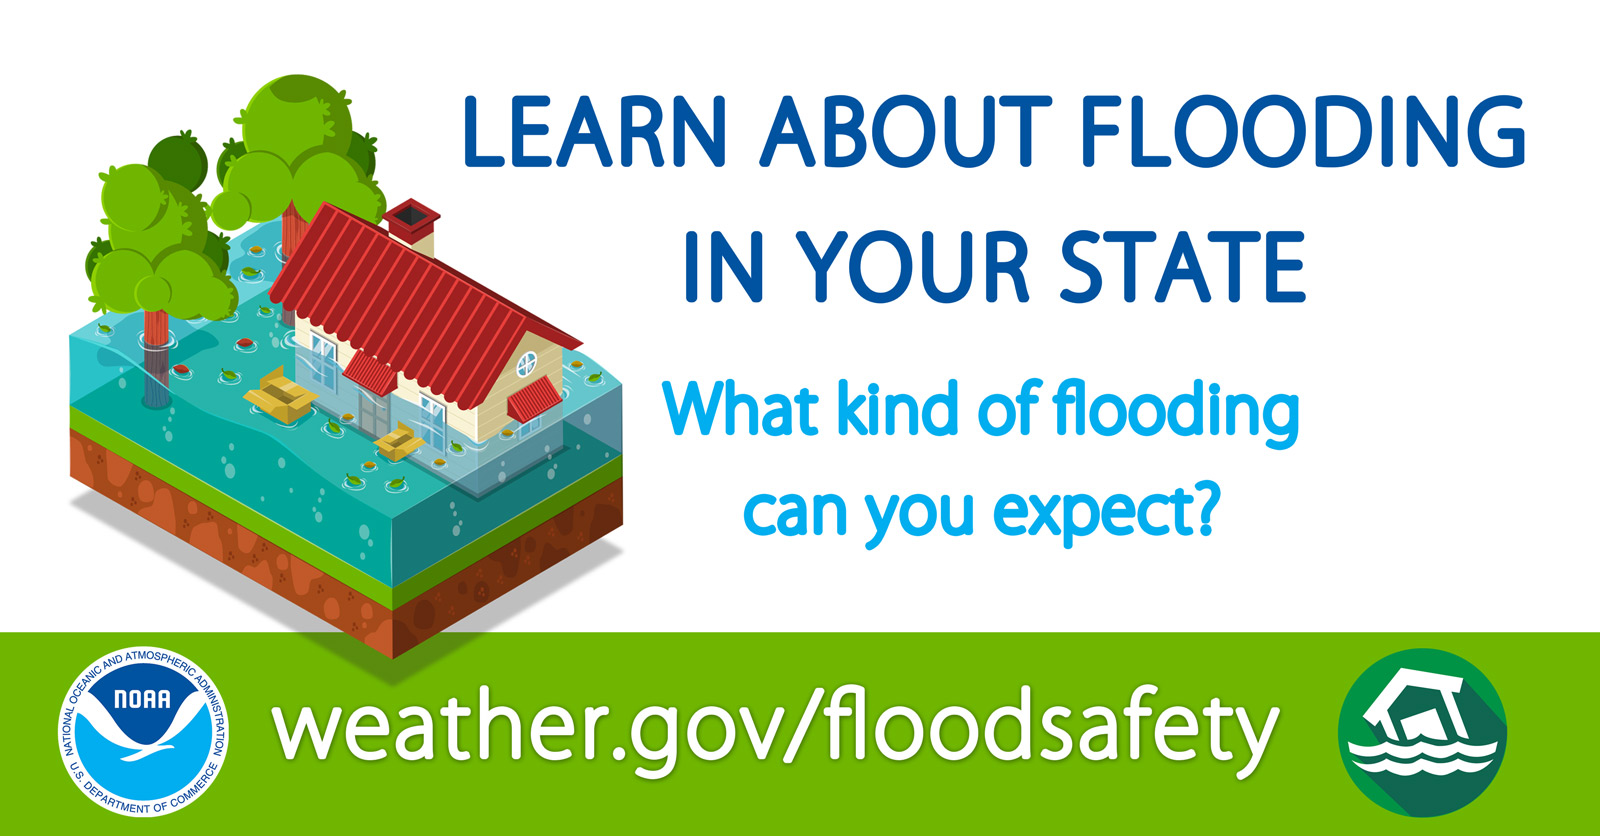 Learn about flooding in your state.  What kind of flooding can you expect?  Find out at weather.gov/safety/floodsafety